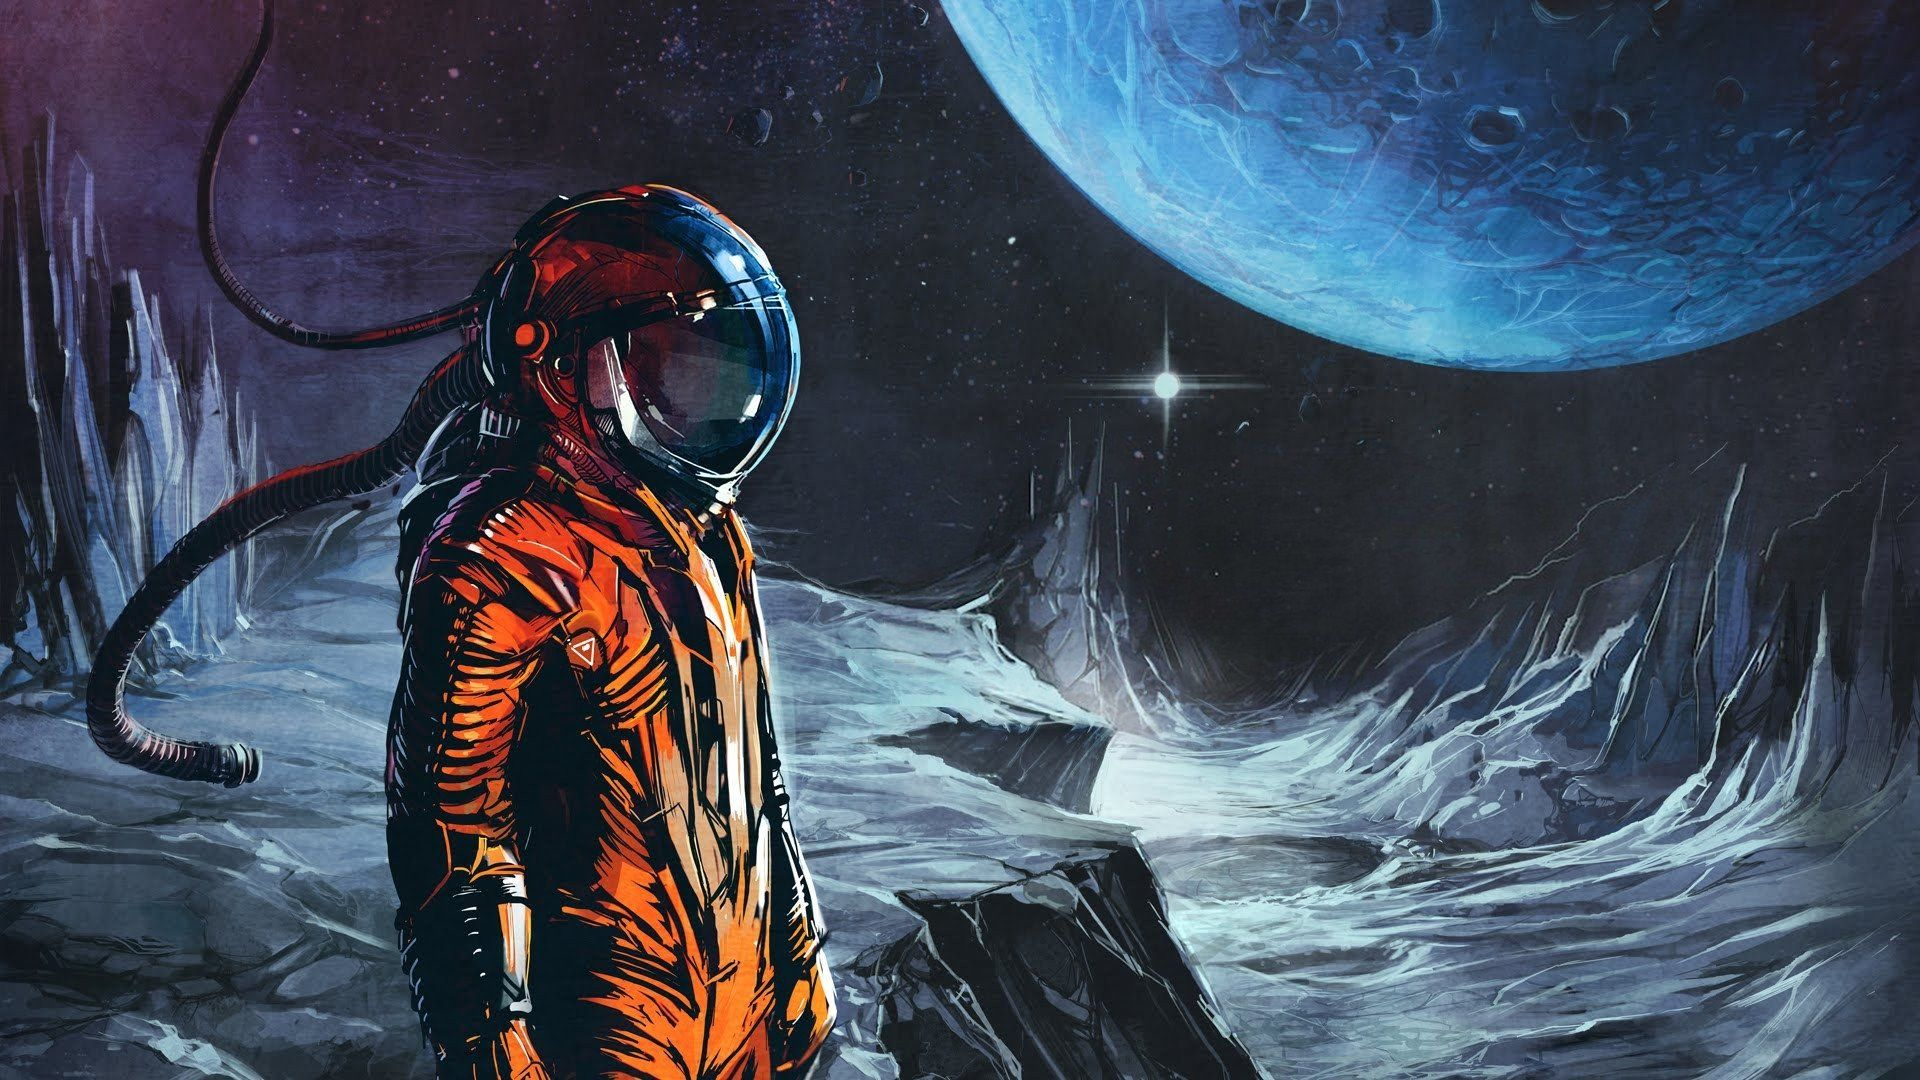 1920x1080 220 Astronaut HD Wallpapers | Background Images - Wallpaper Abyss